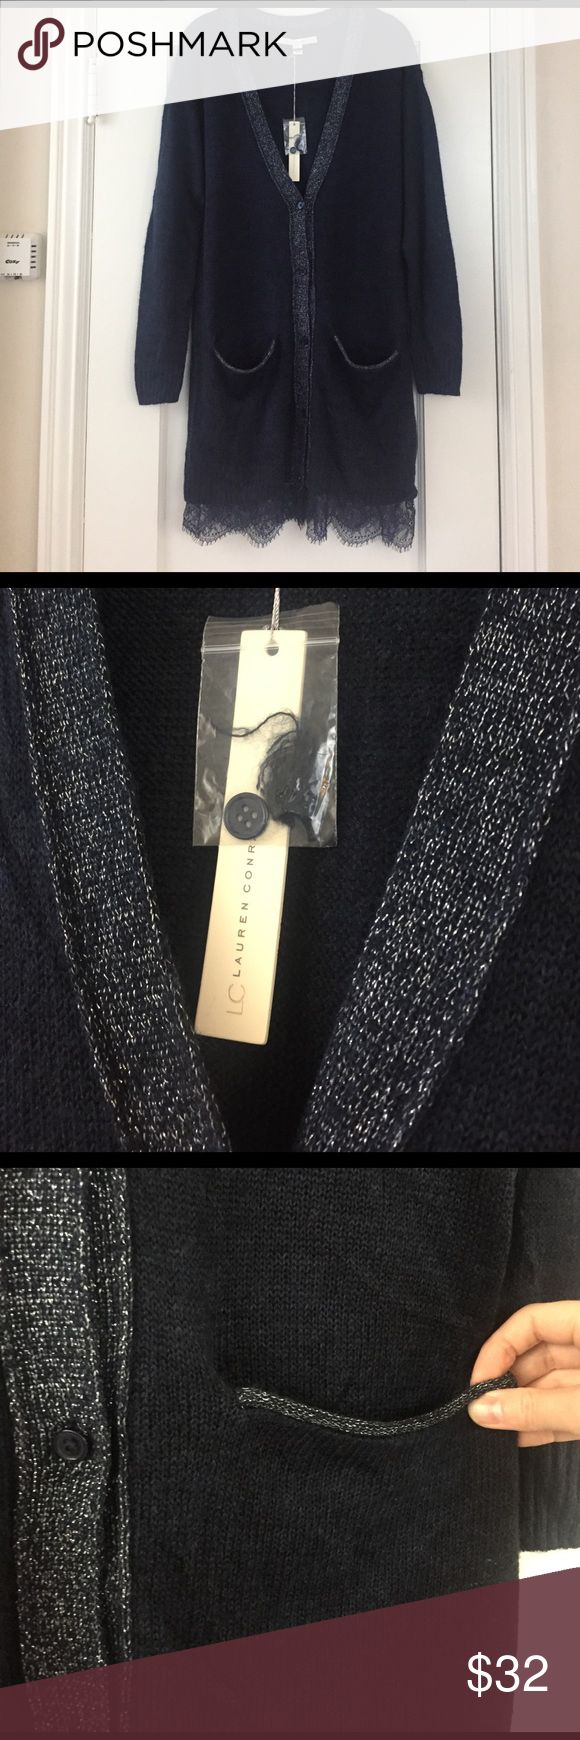 """LC Lauren Conrad navy blue cardigan sweater lace LC Lauren Conrad cardigan sweater. Long sweater, coat length. Buttons up front, metallic fibers in trim, lace at bottom hem. Pockets!!!! Sweater is thin, wonderful for layering. Soft, 67% acrylic, 31% nylon, 2% """"other"""" which I'm assuming is the metallic fiber. Lace is 100% nylon.  Smoke free and pet free home, new with tags. Size medium, loose fit. LC Lauren Conrad Sweaters Cardigans"""